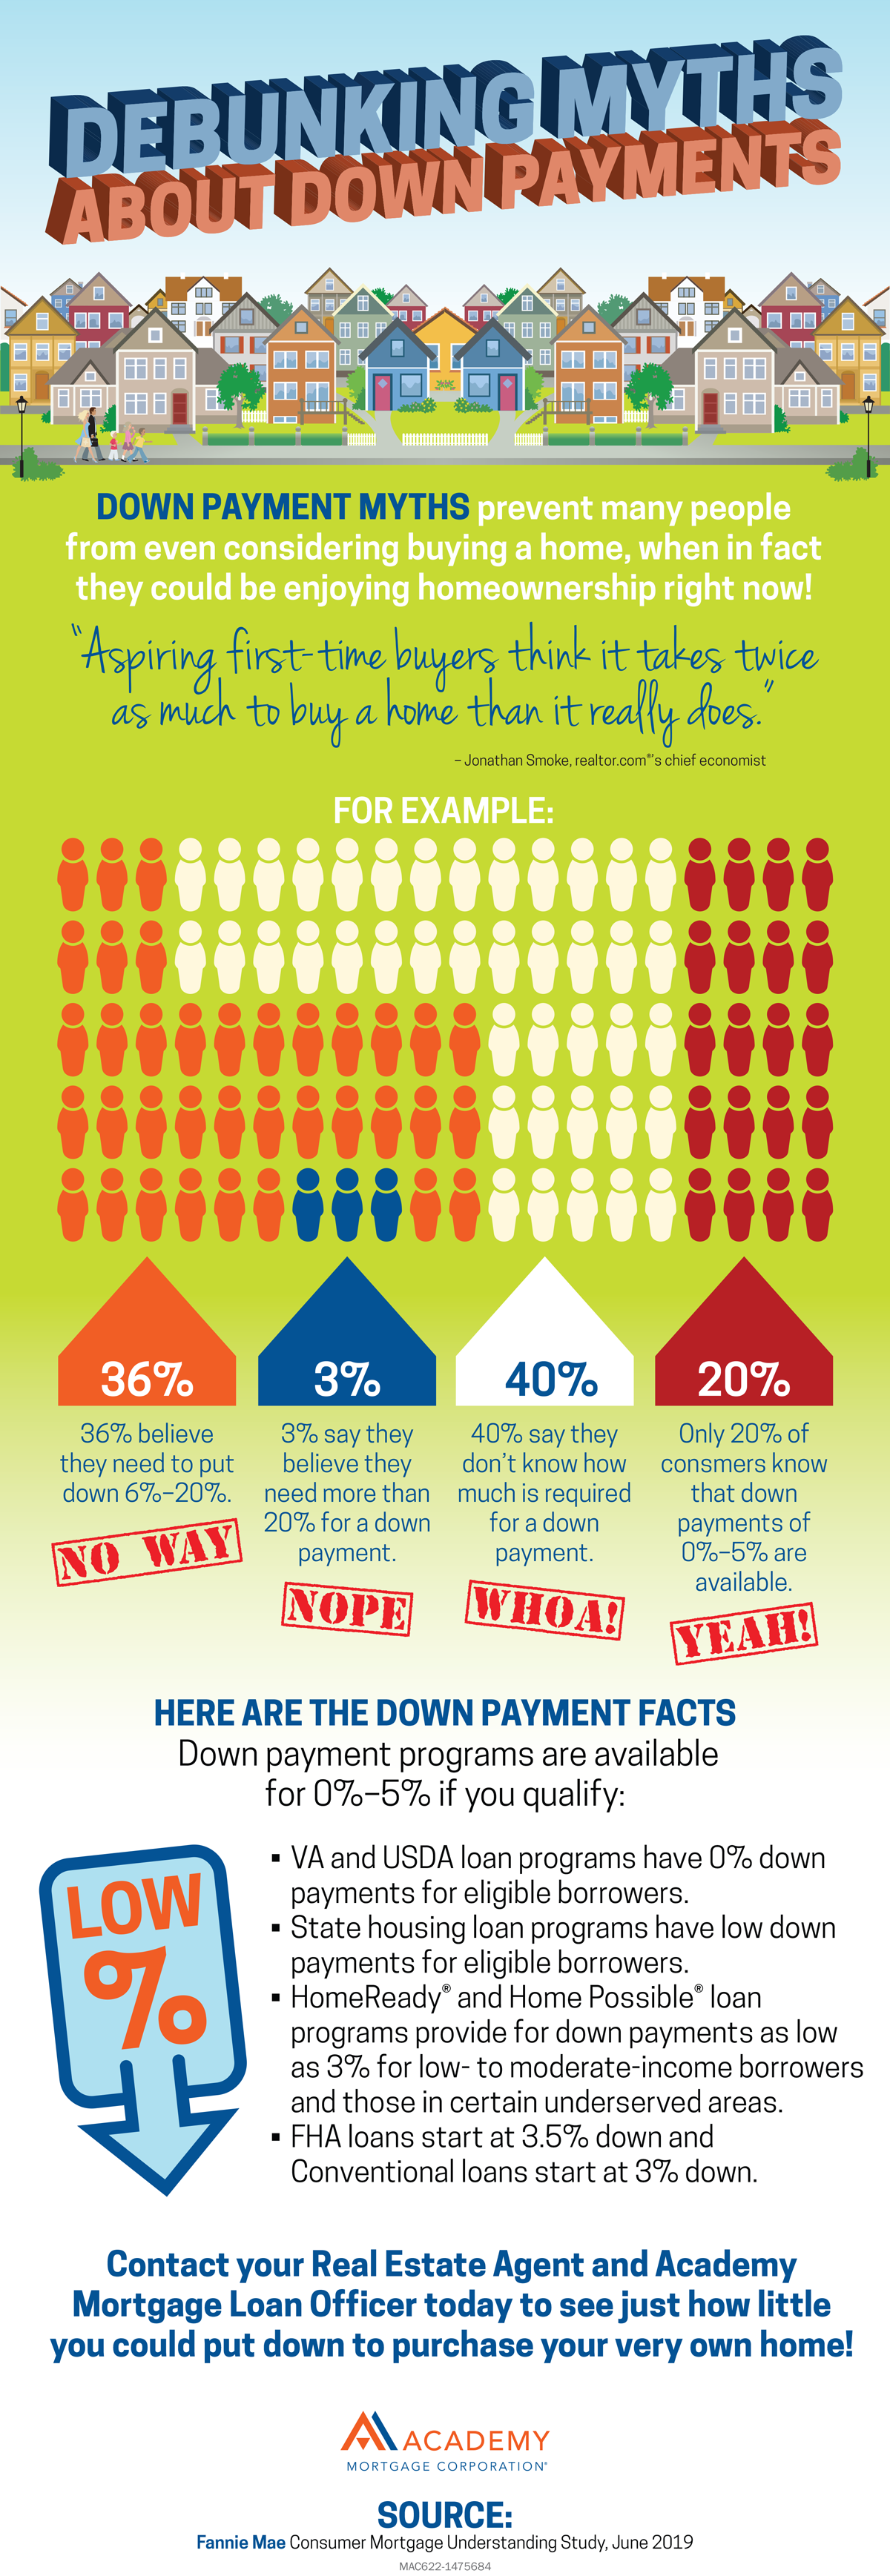 down-payment-myths-infographic